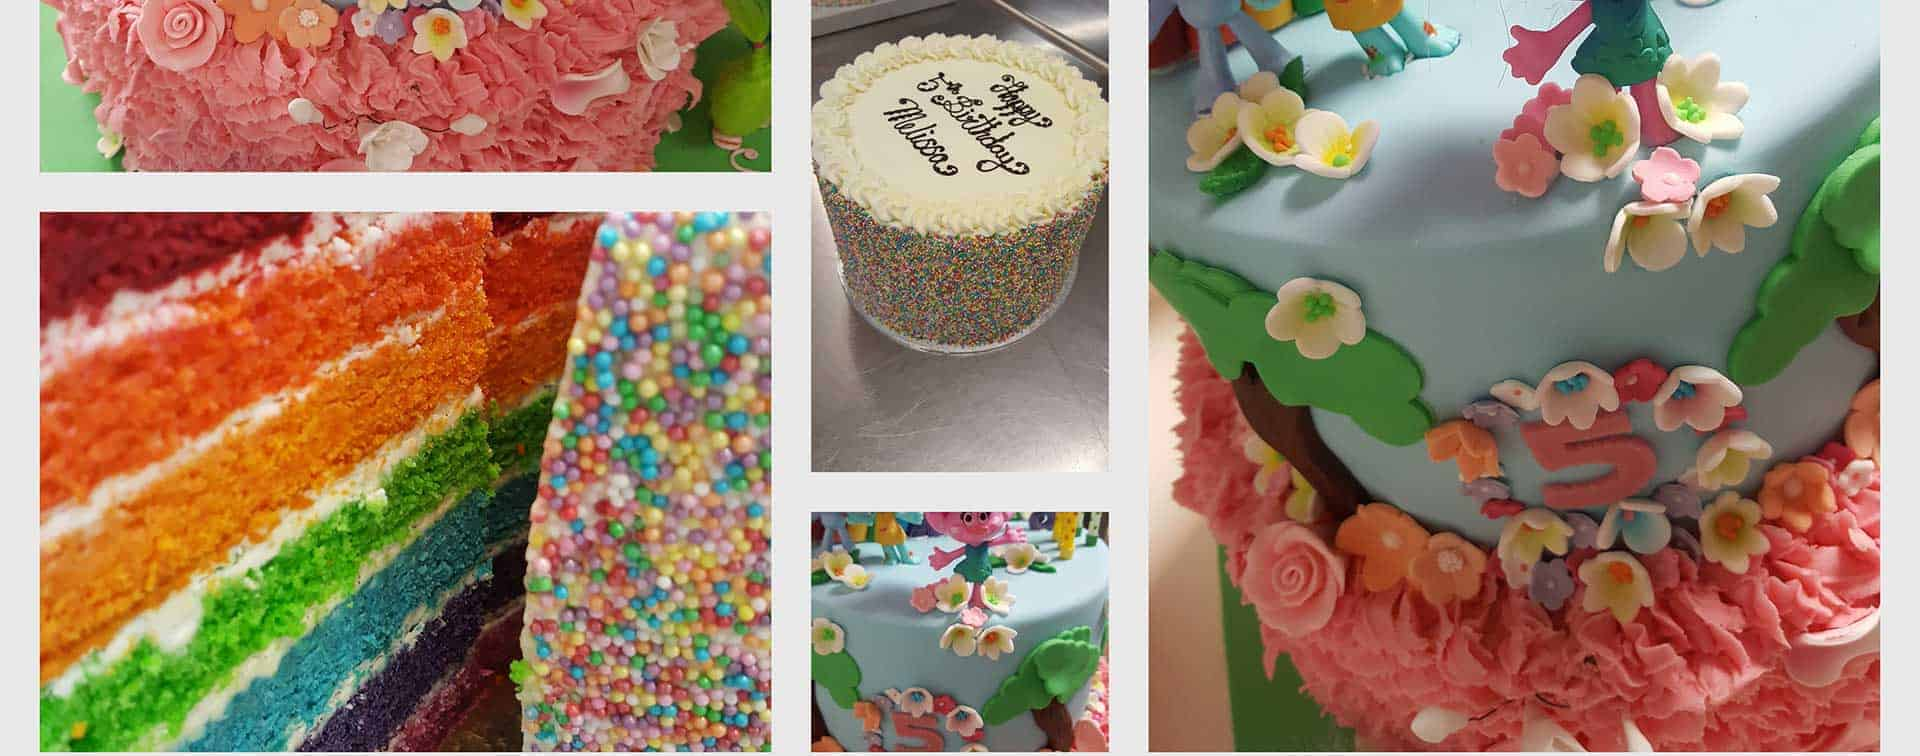 Special Order Cakes from Chateau, Chiswick